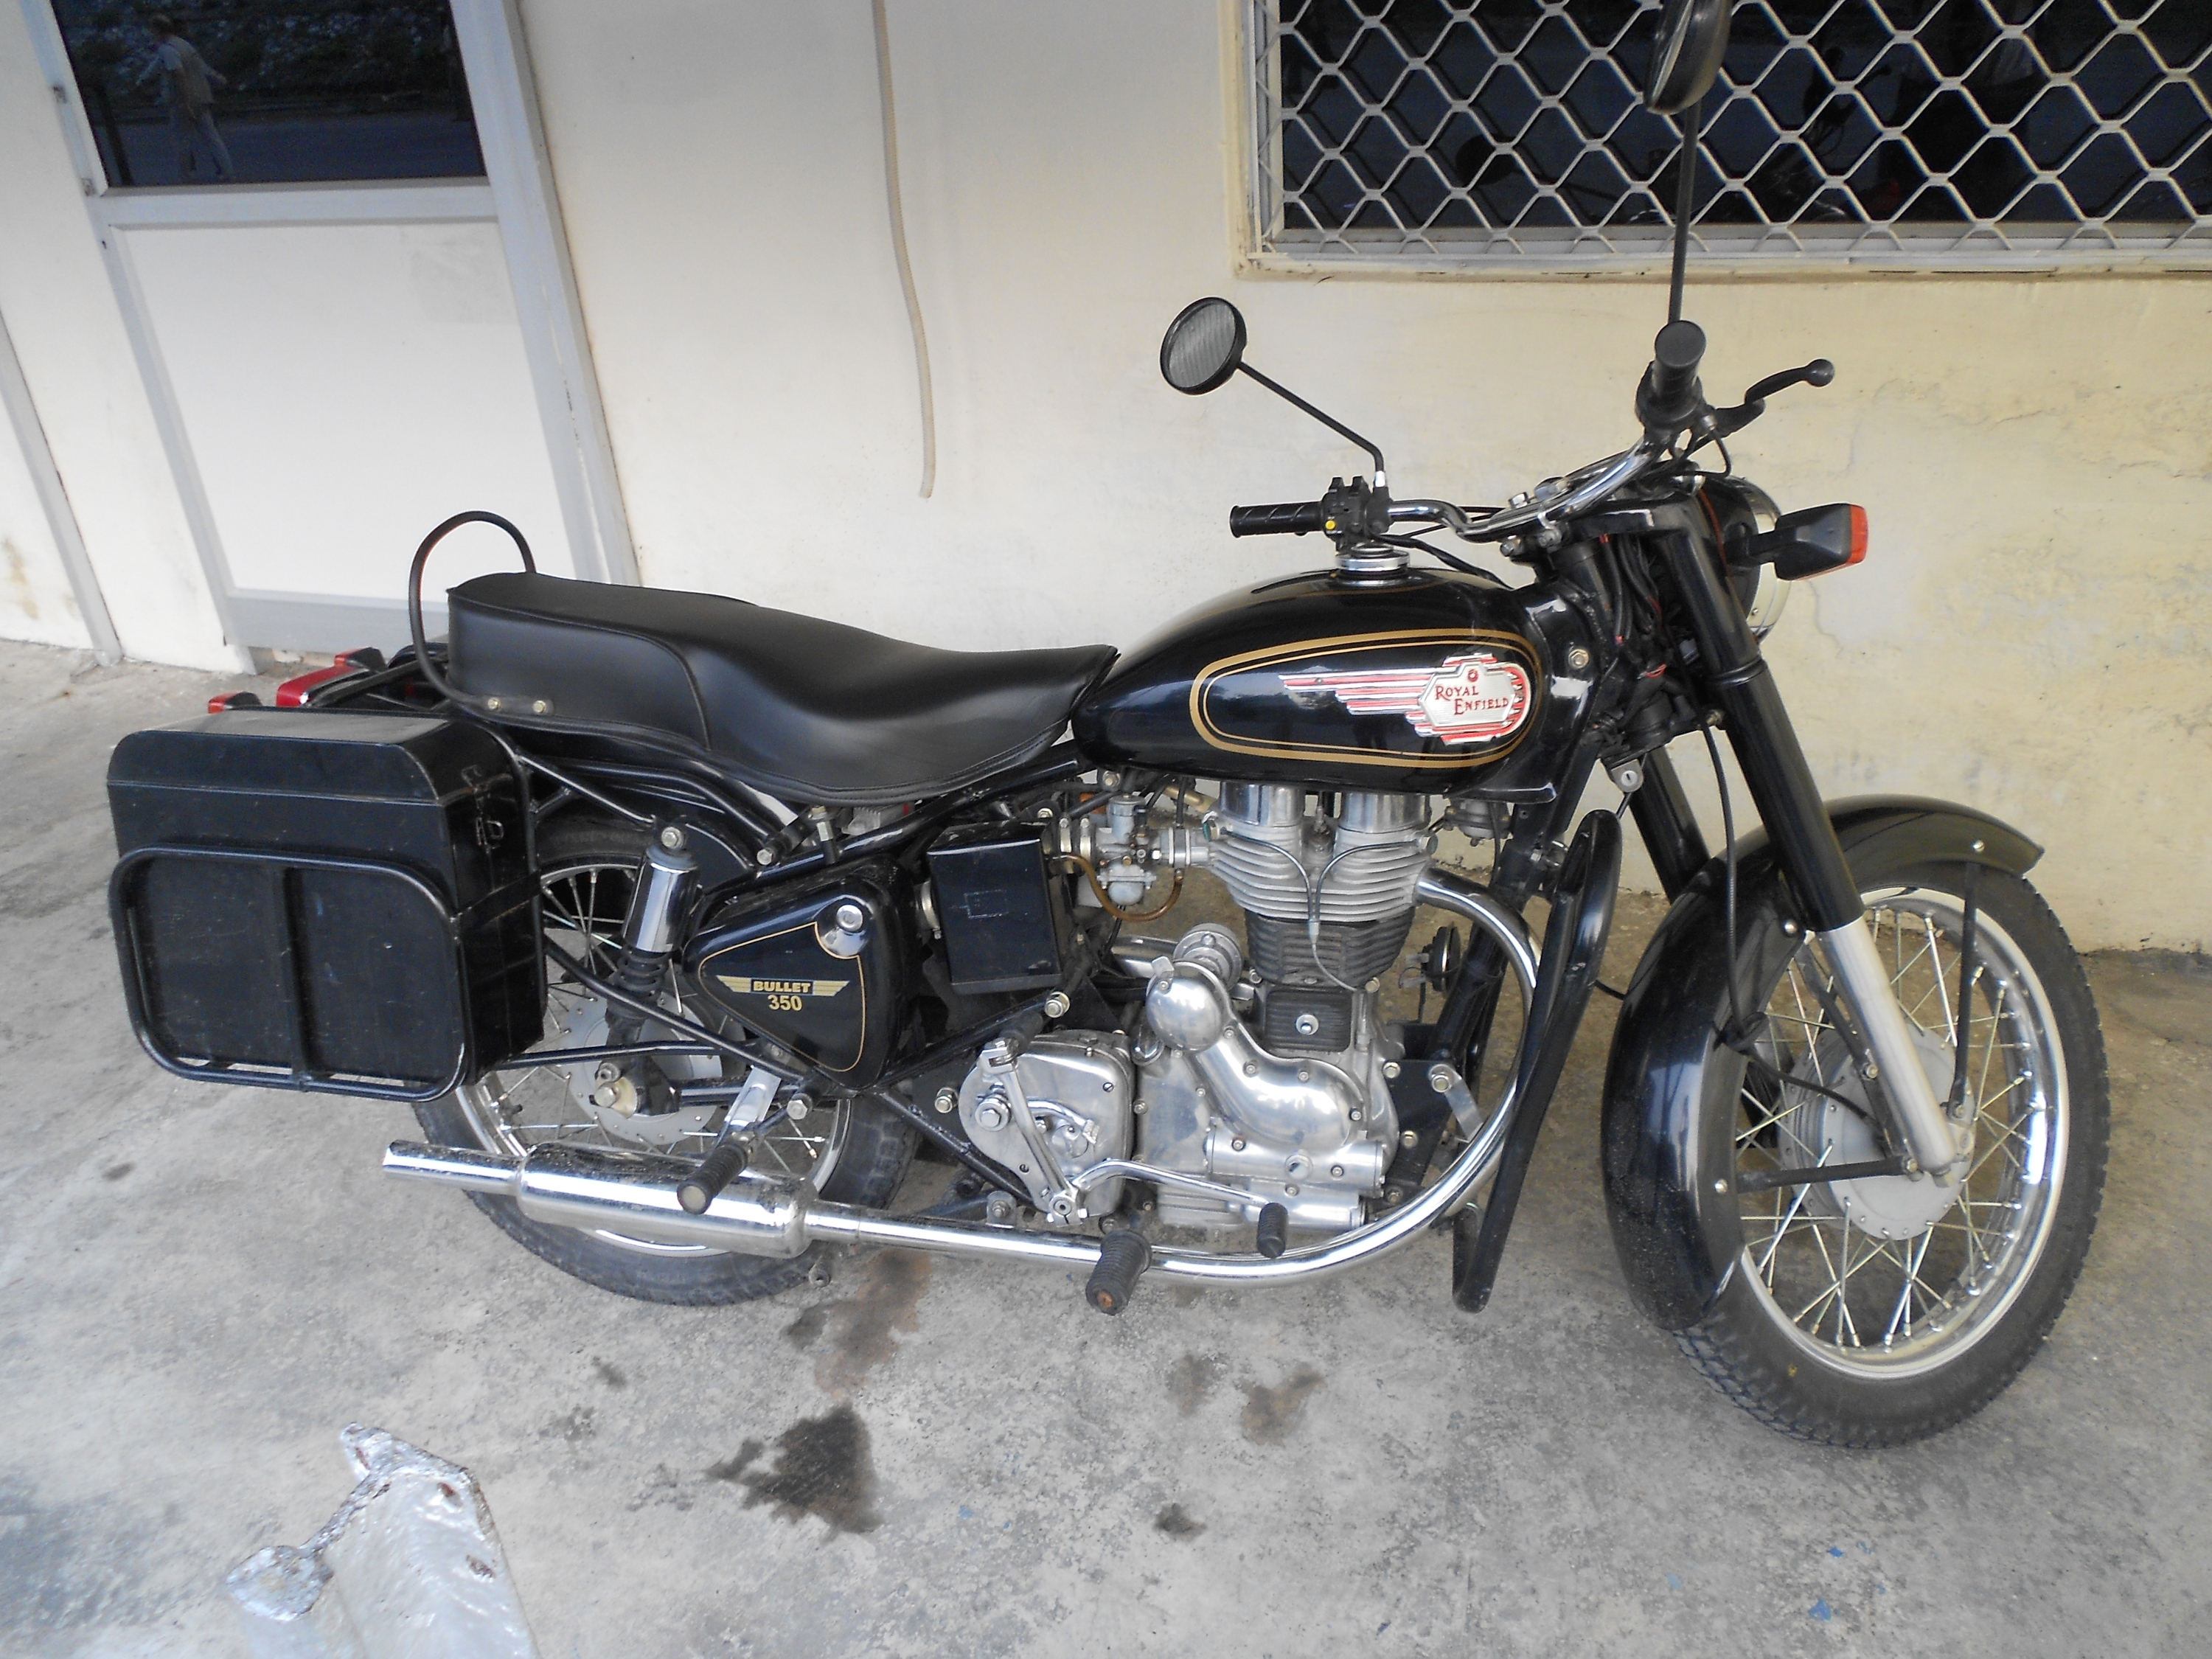 Royal Enfield Bullet 350 Army 1987 images #122436